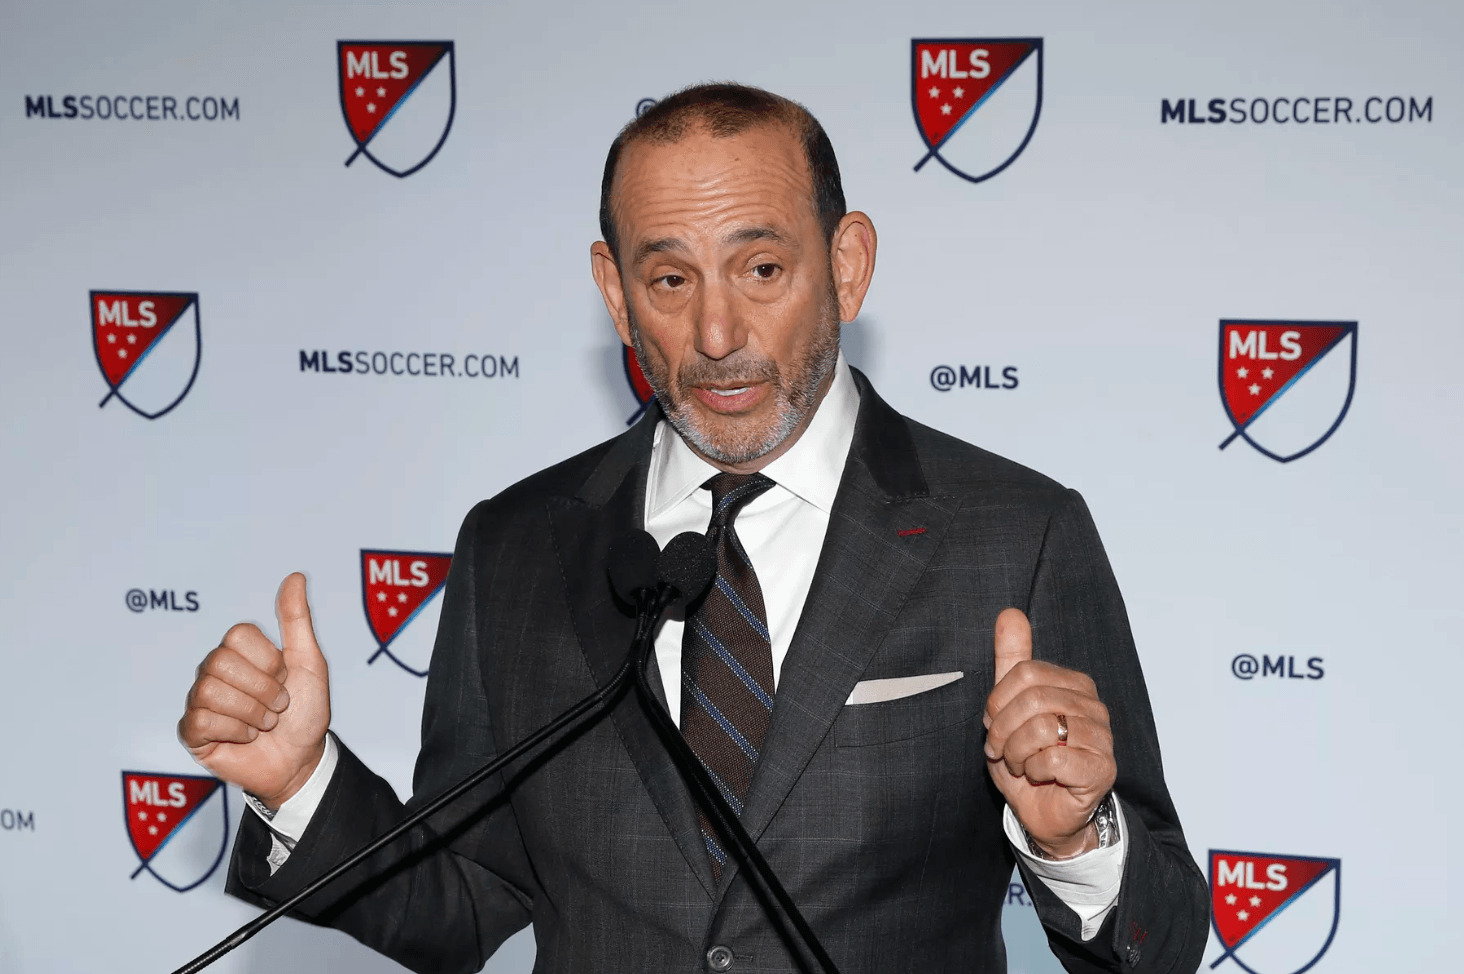 MLS Don Garber soccer odds sports betting